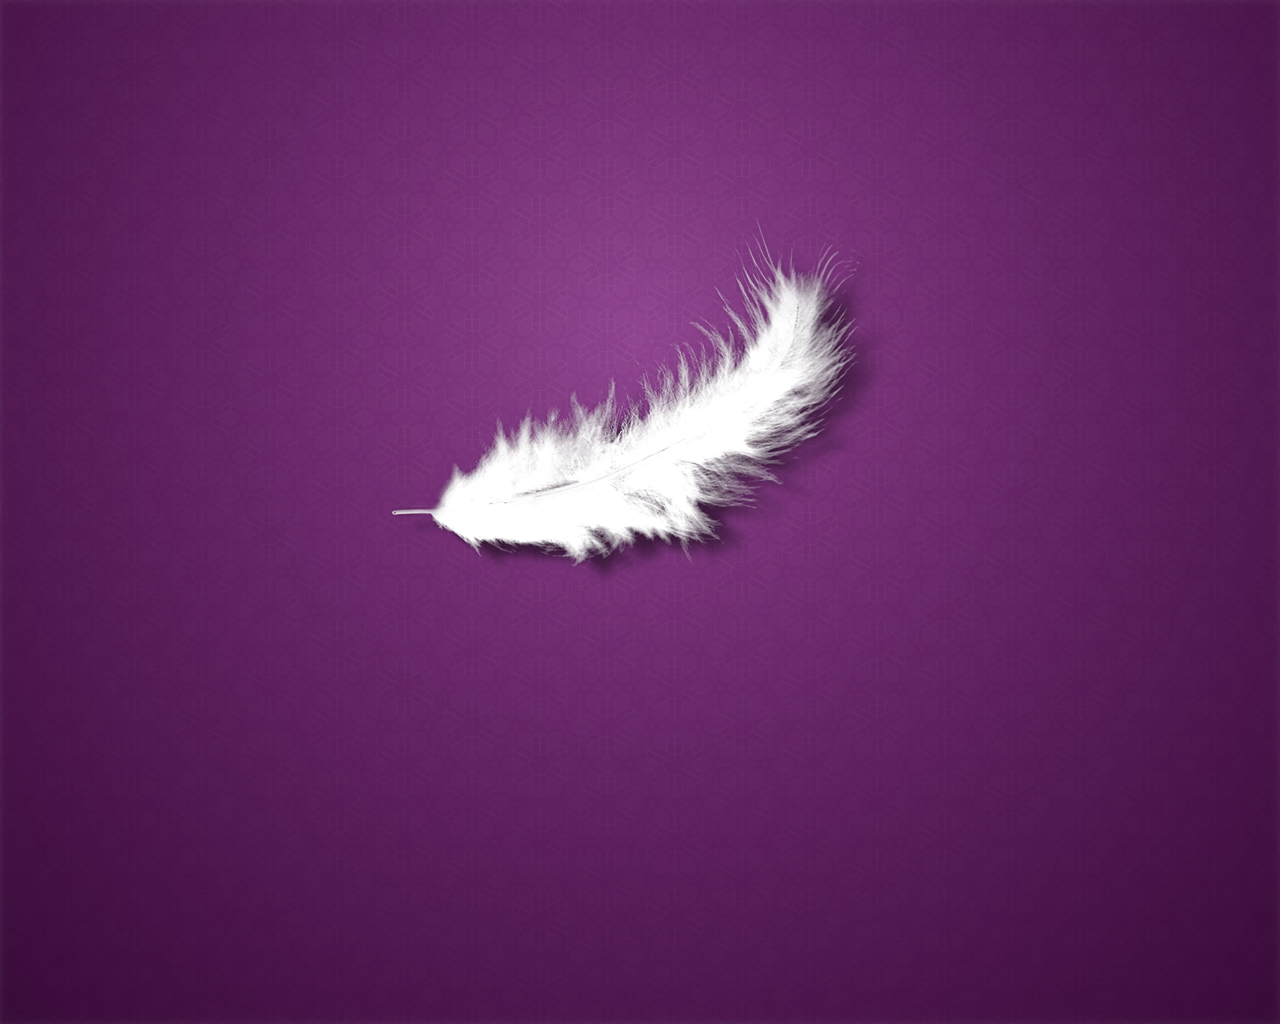 Beautiful Feathers Wallpapers and Pictures One HD 1280x1024